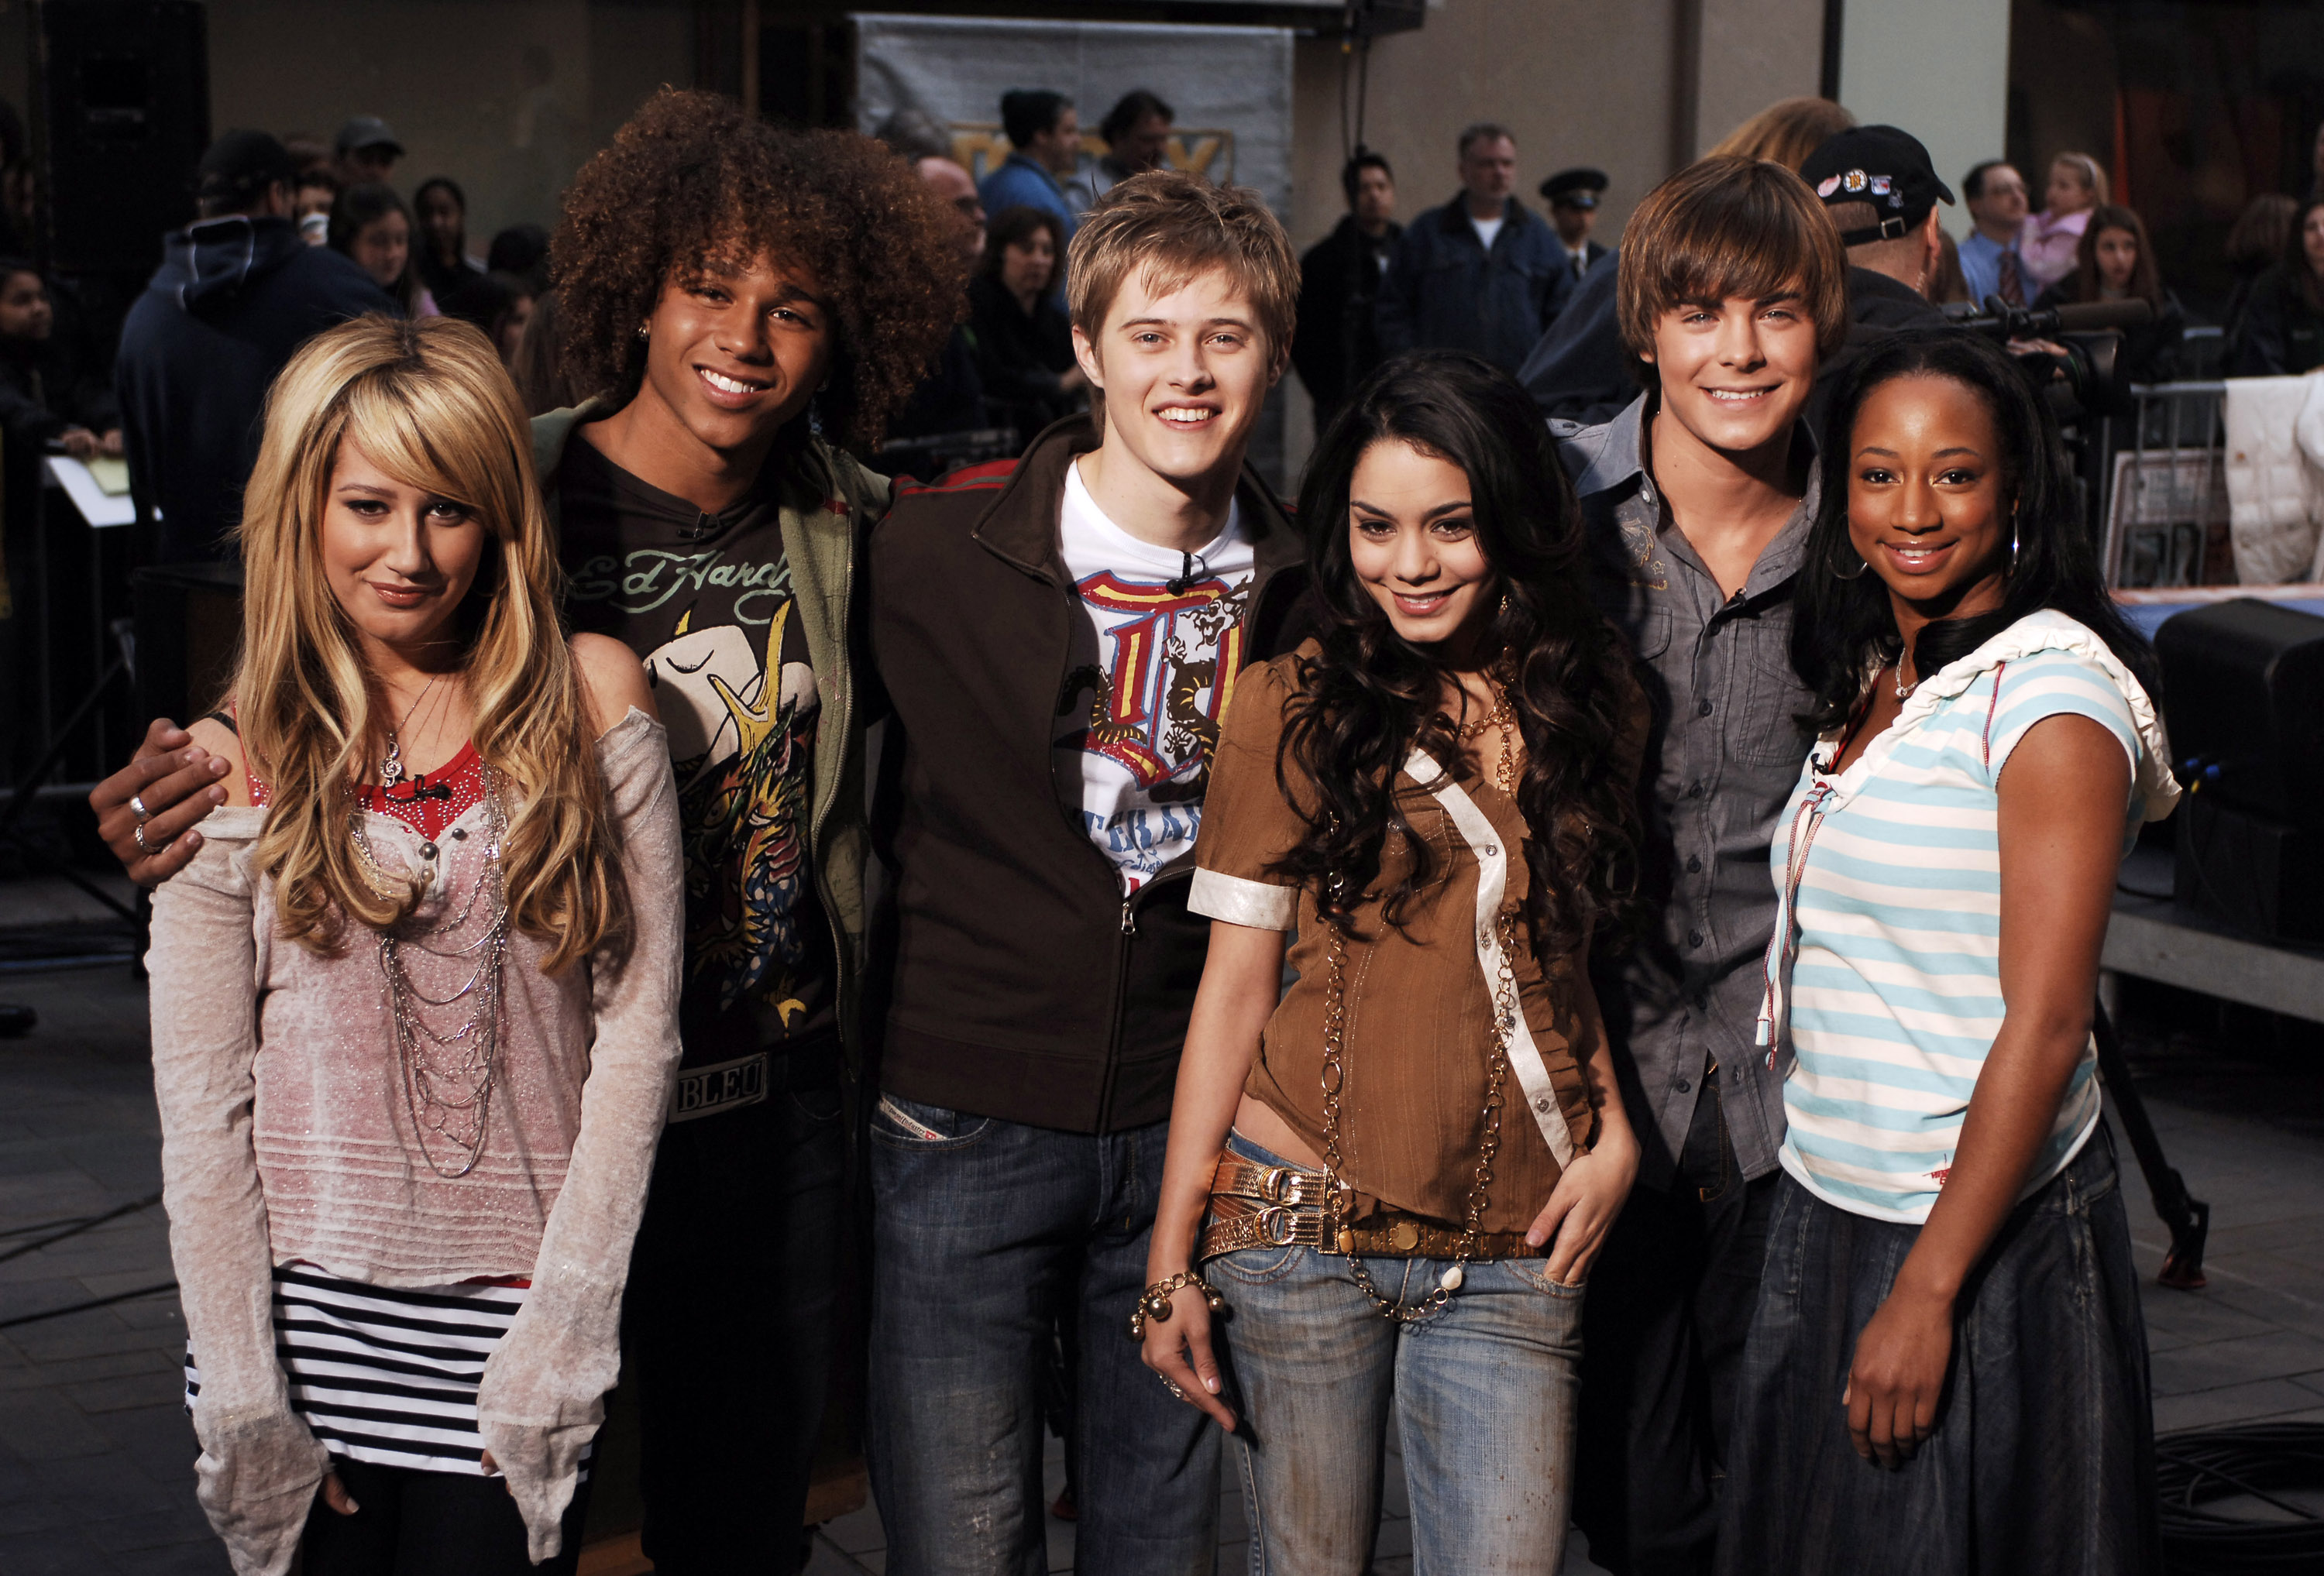 Disney Channel is making another high school musical — but this time, with zombies